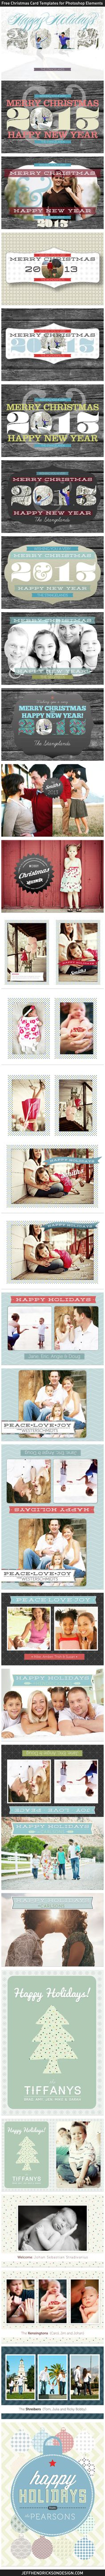 29 Free Christmas / Holiday card templates for Photoshop Elements. Hi-res, printable 7x5 & 5x7. @KaeLeigh Mae